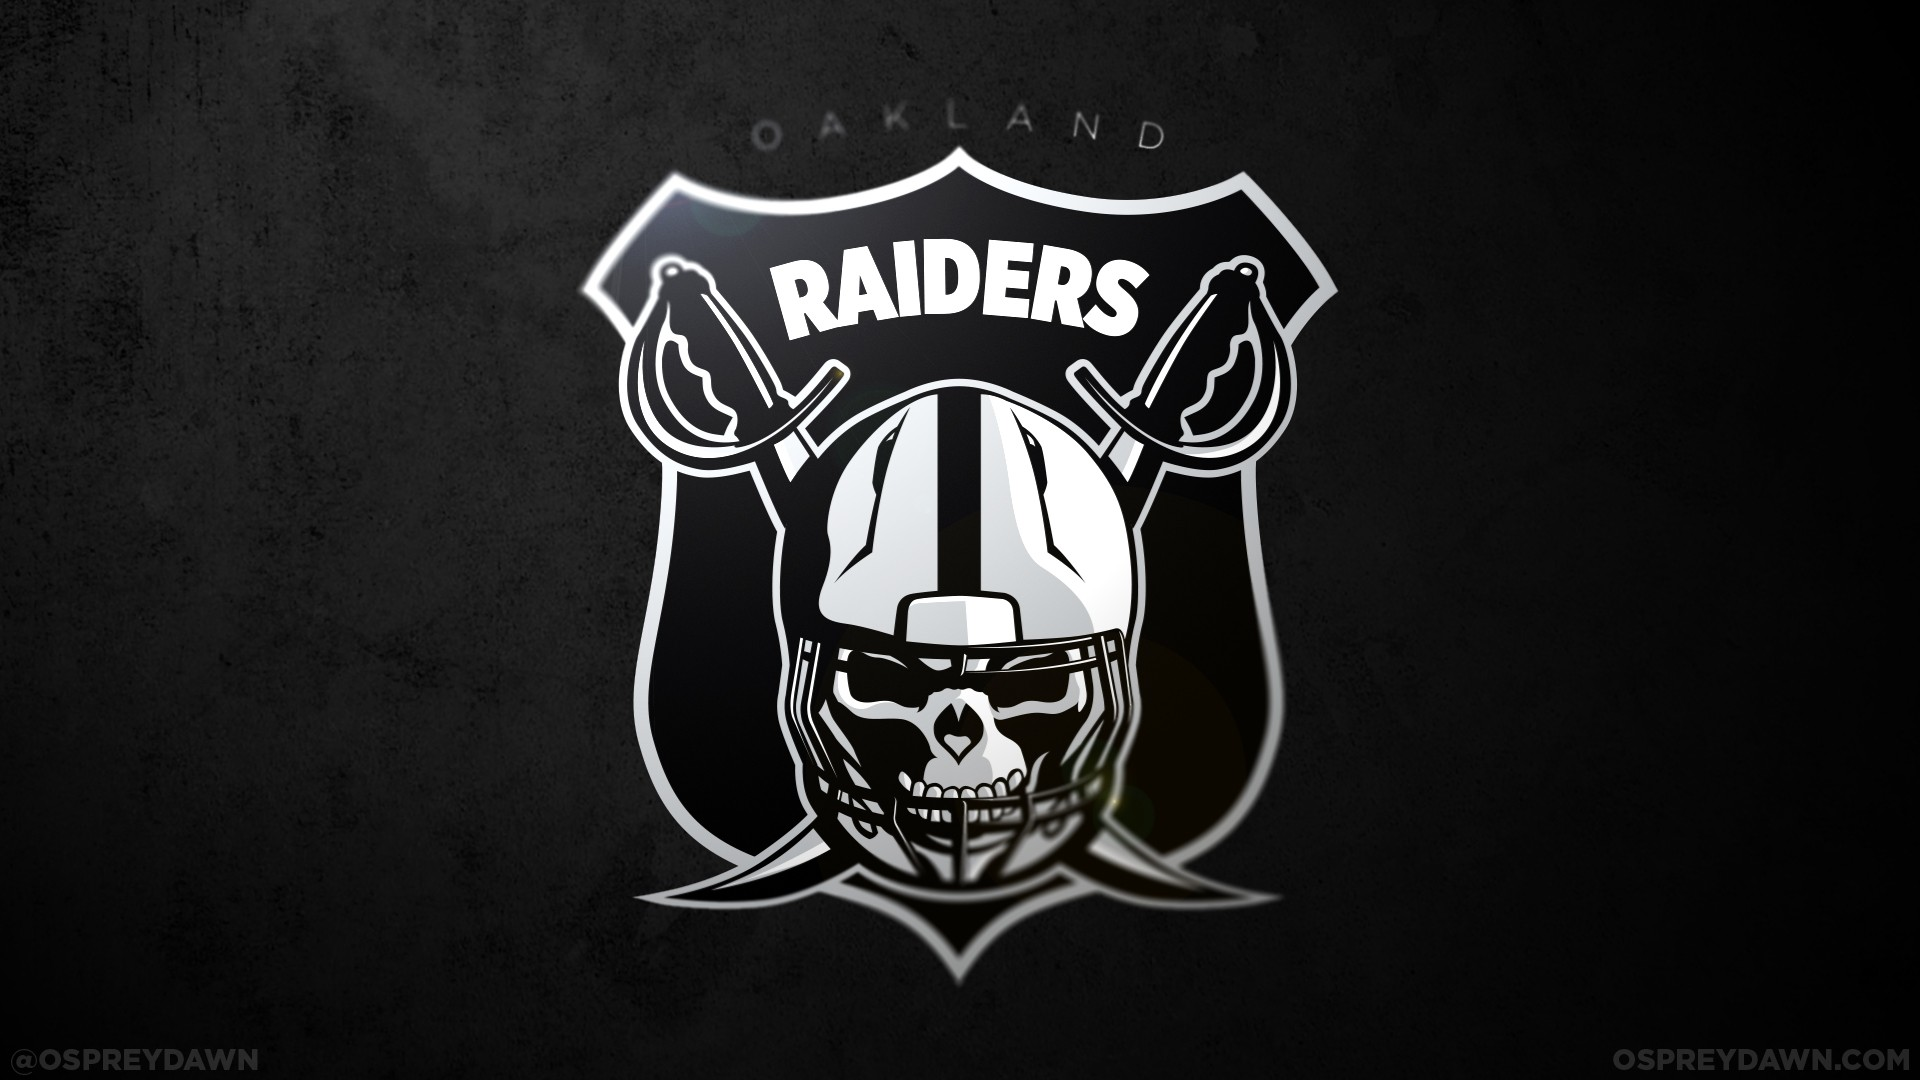 Oakland Raiders Wallpaper Download Free Awesome Full Hd